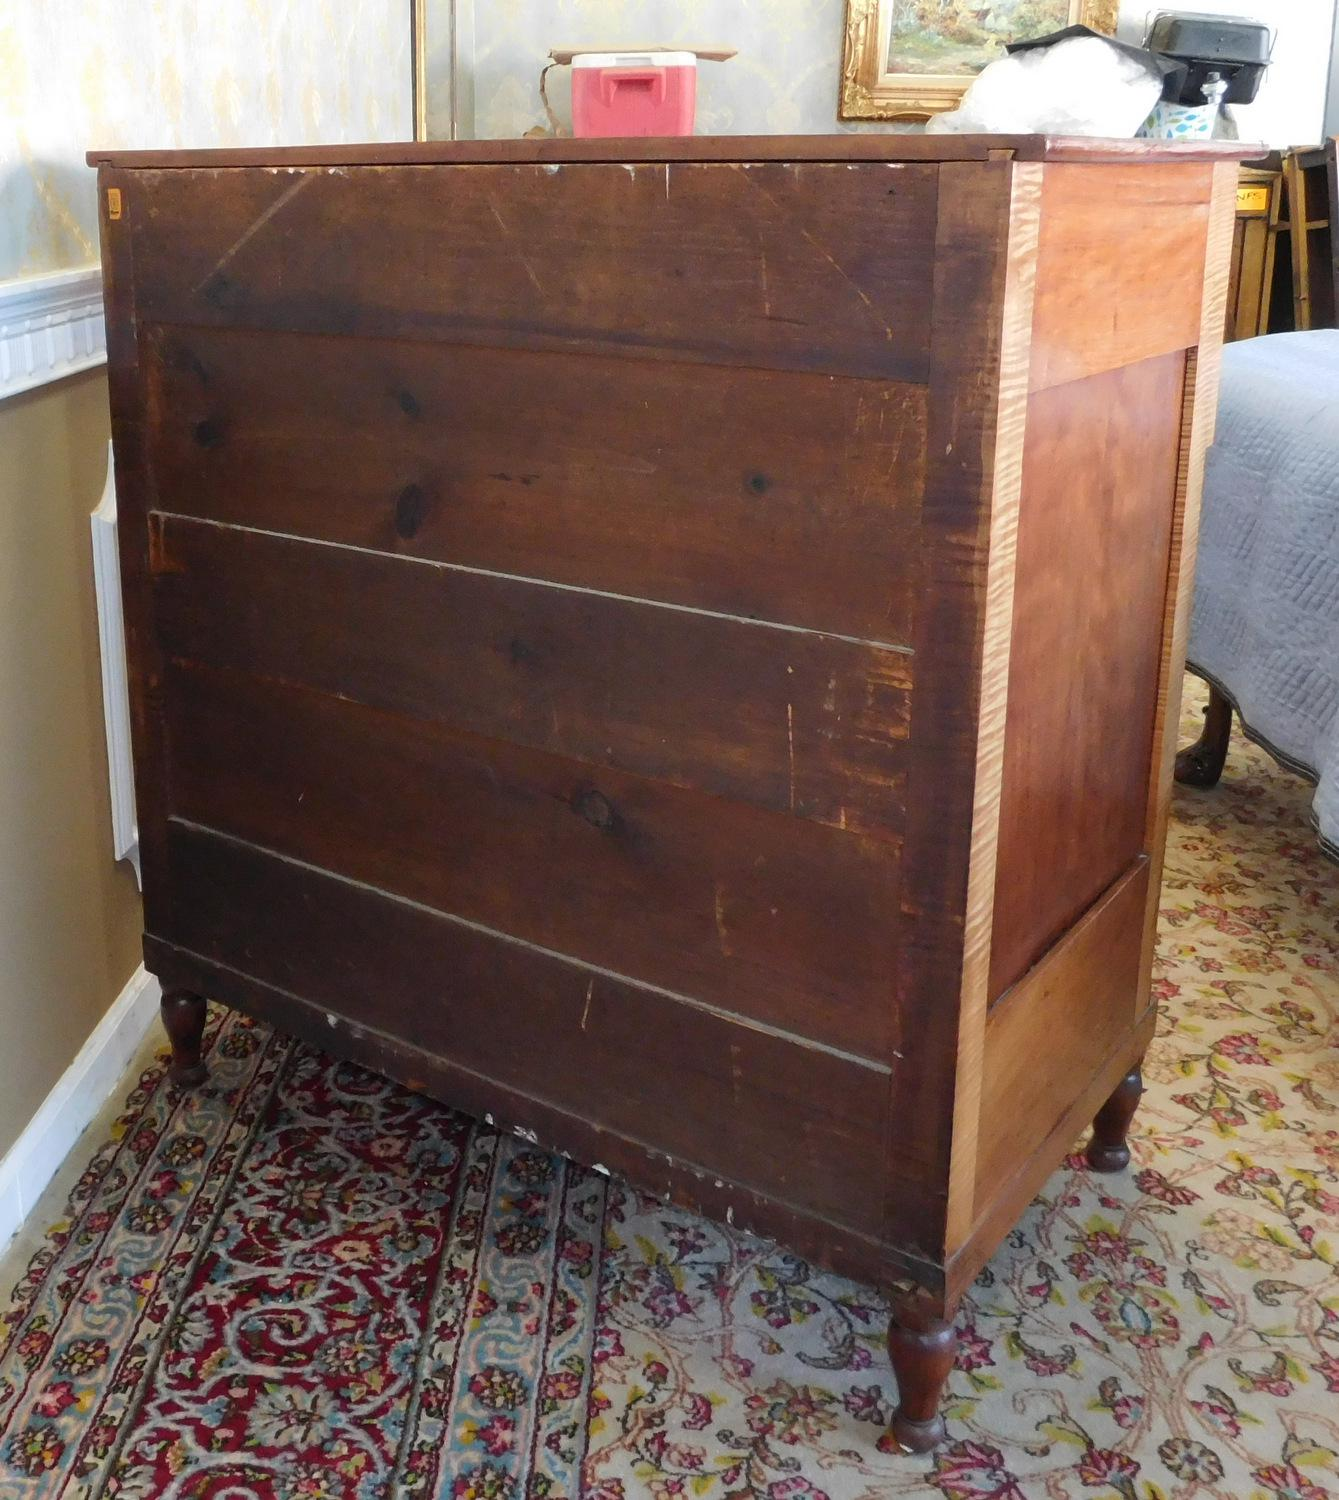 Antique American Empire Period Applewood U0026 Tiger Maple Chest Of Drawers  C1840 For Sale   Image